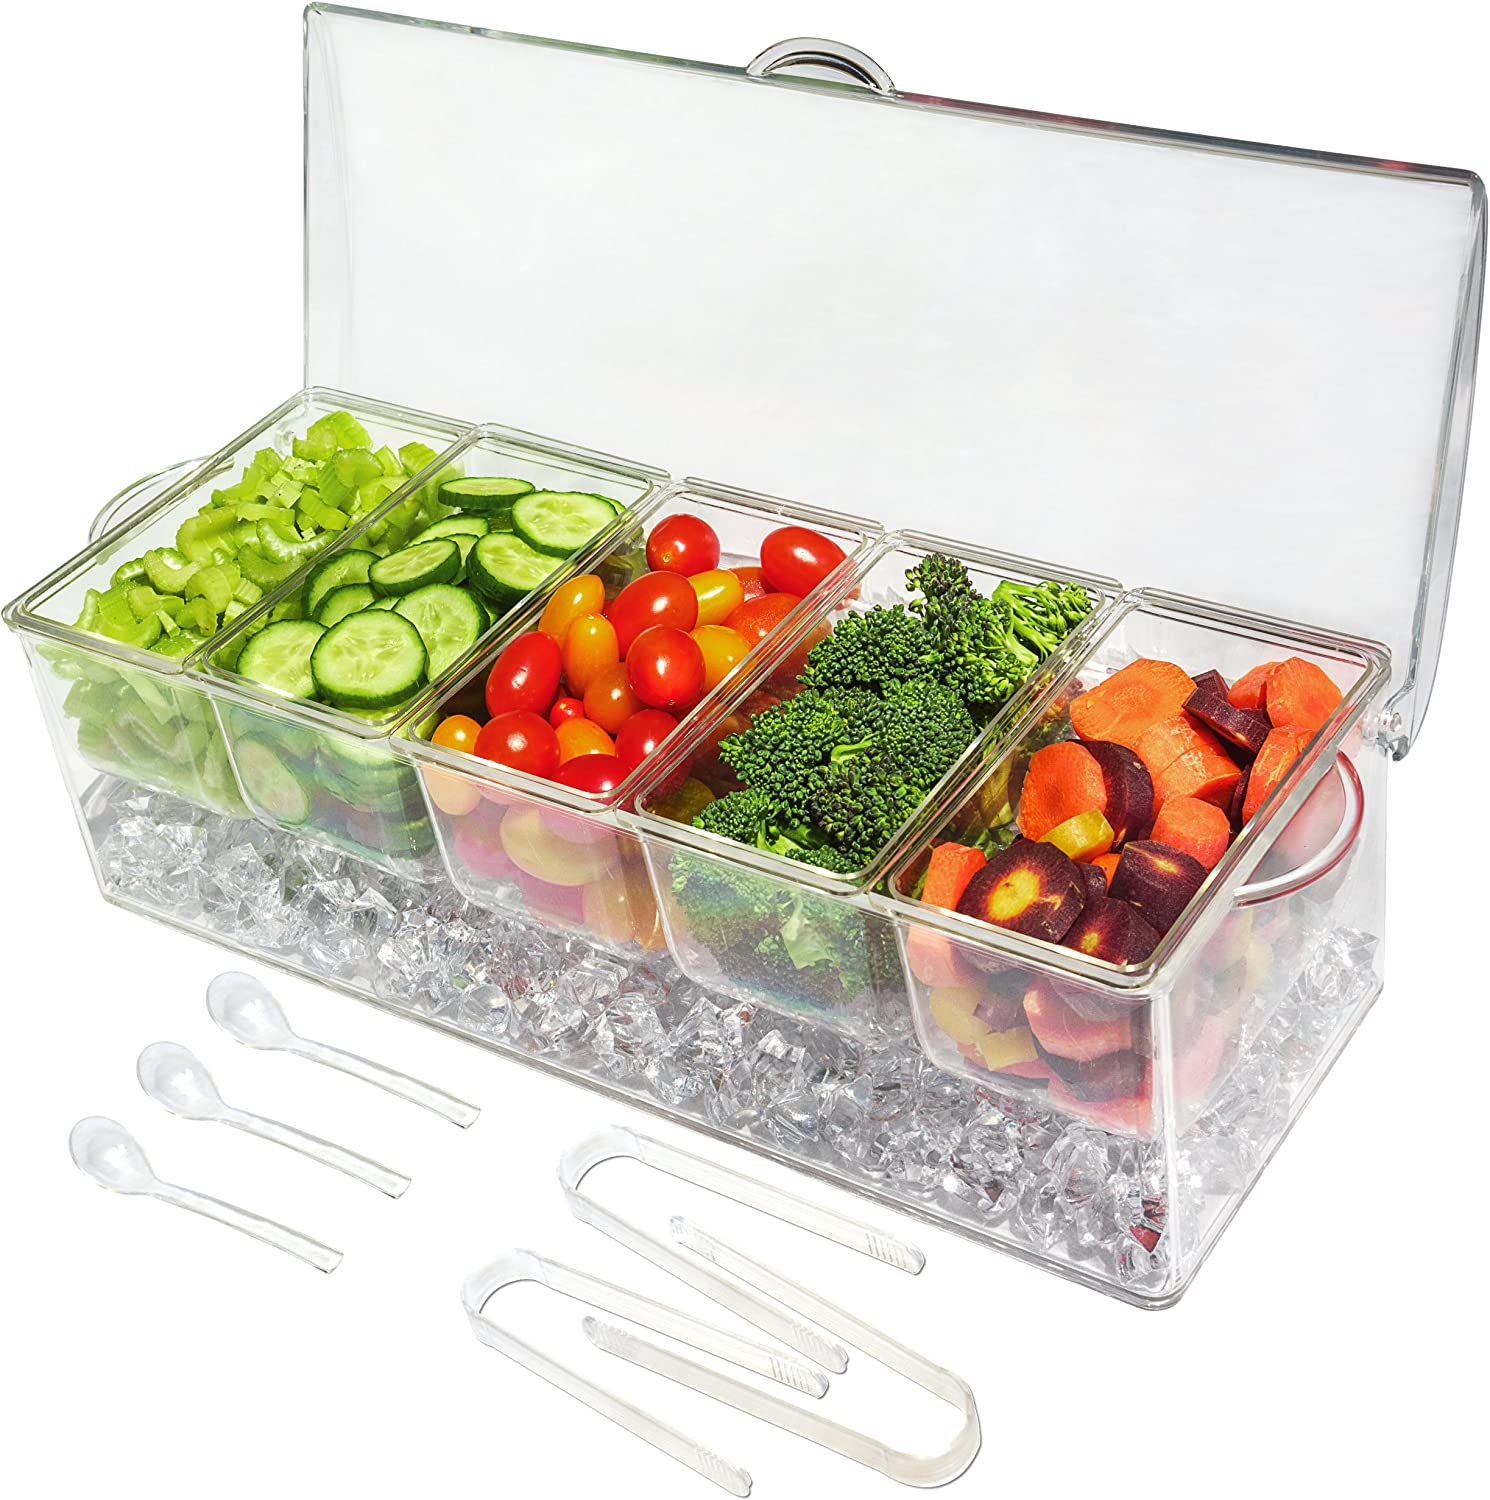 Ice Chilled 5 Compartment Condiment Server Caddy - Serving Tray Container with 5 Removable Dishes with over 2 Cup Capacity Each and Hinged Lid | 3 Serving Spoons + 3 Tongs Included